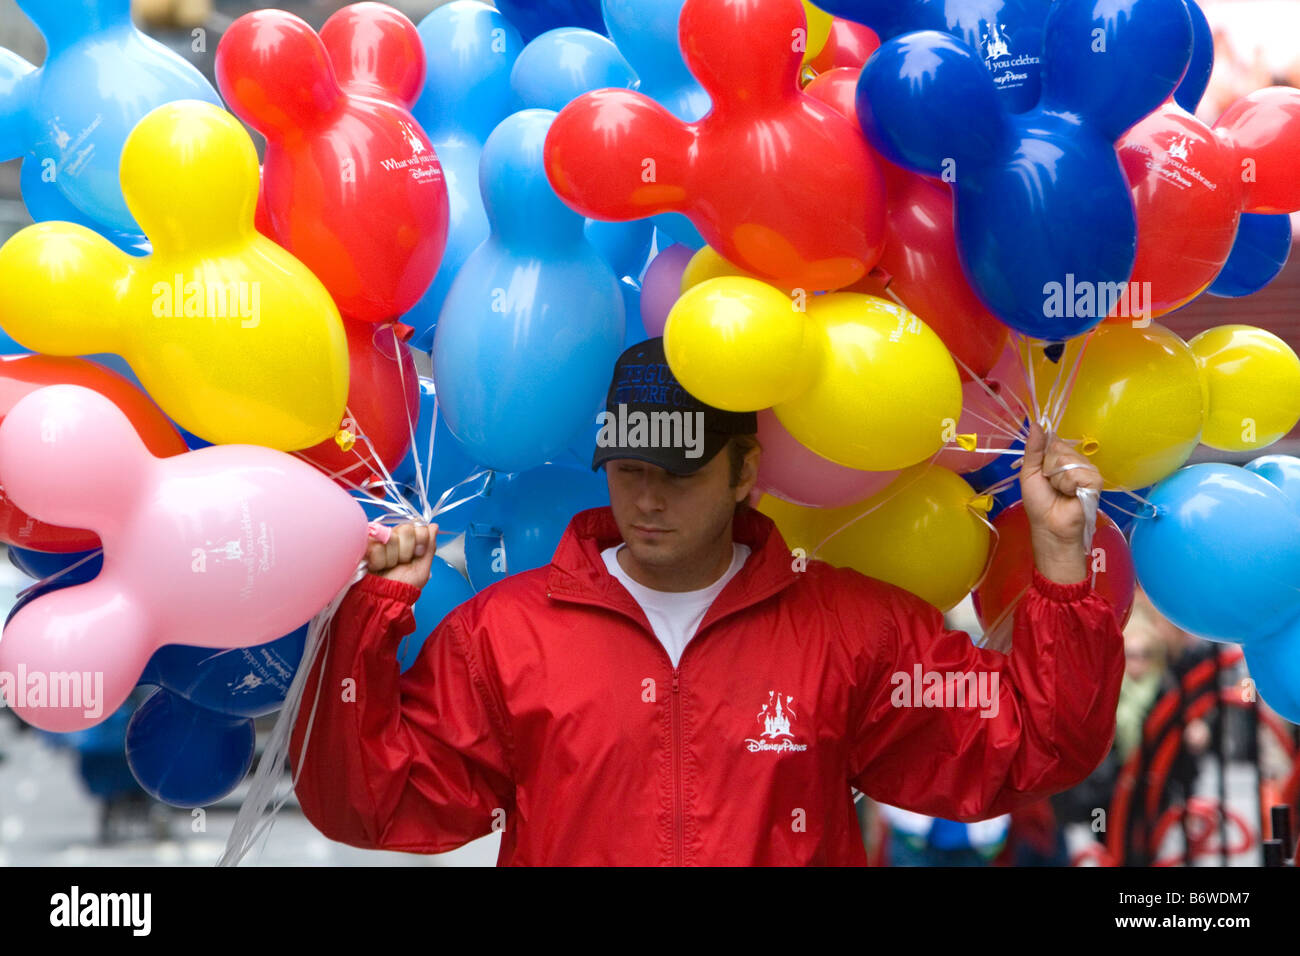 Promotional Disney balloons being handed out in Times Square Manhattan New York City New York USA - Stock Image